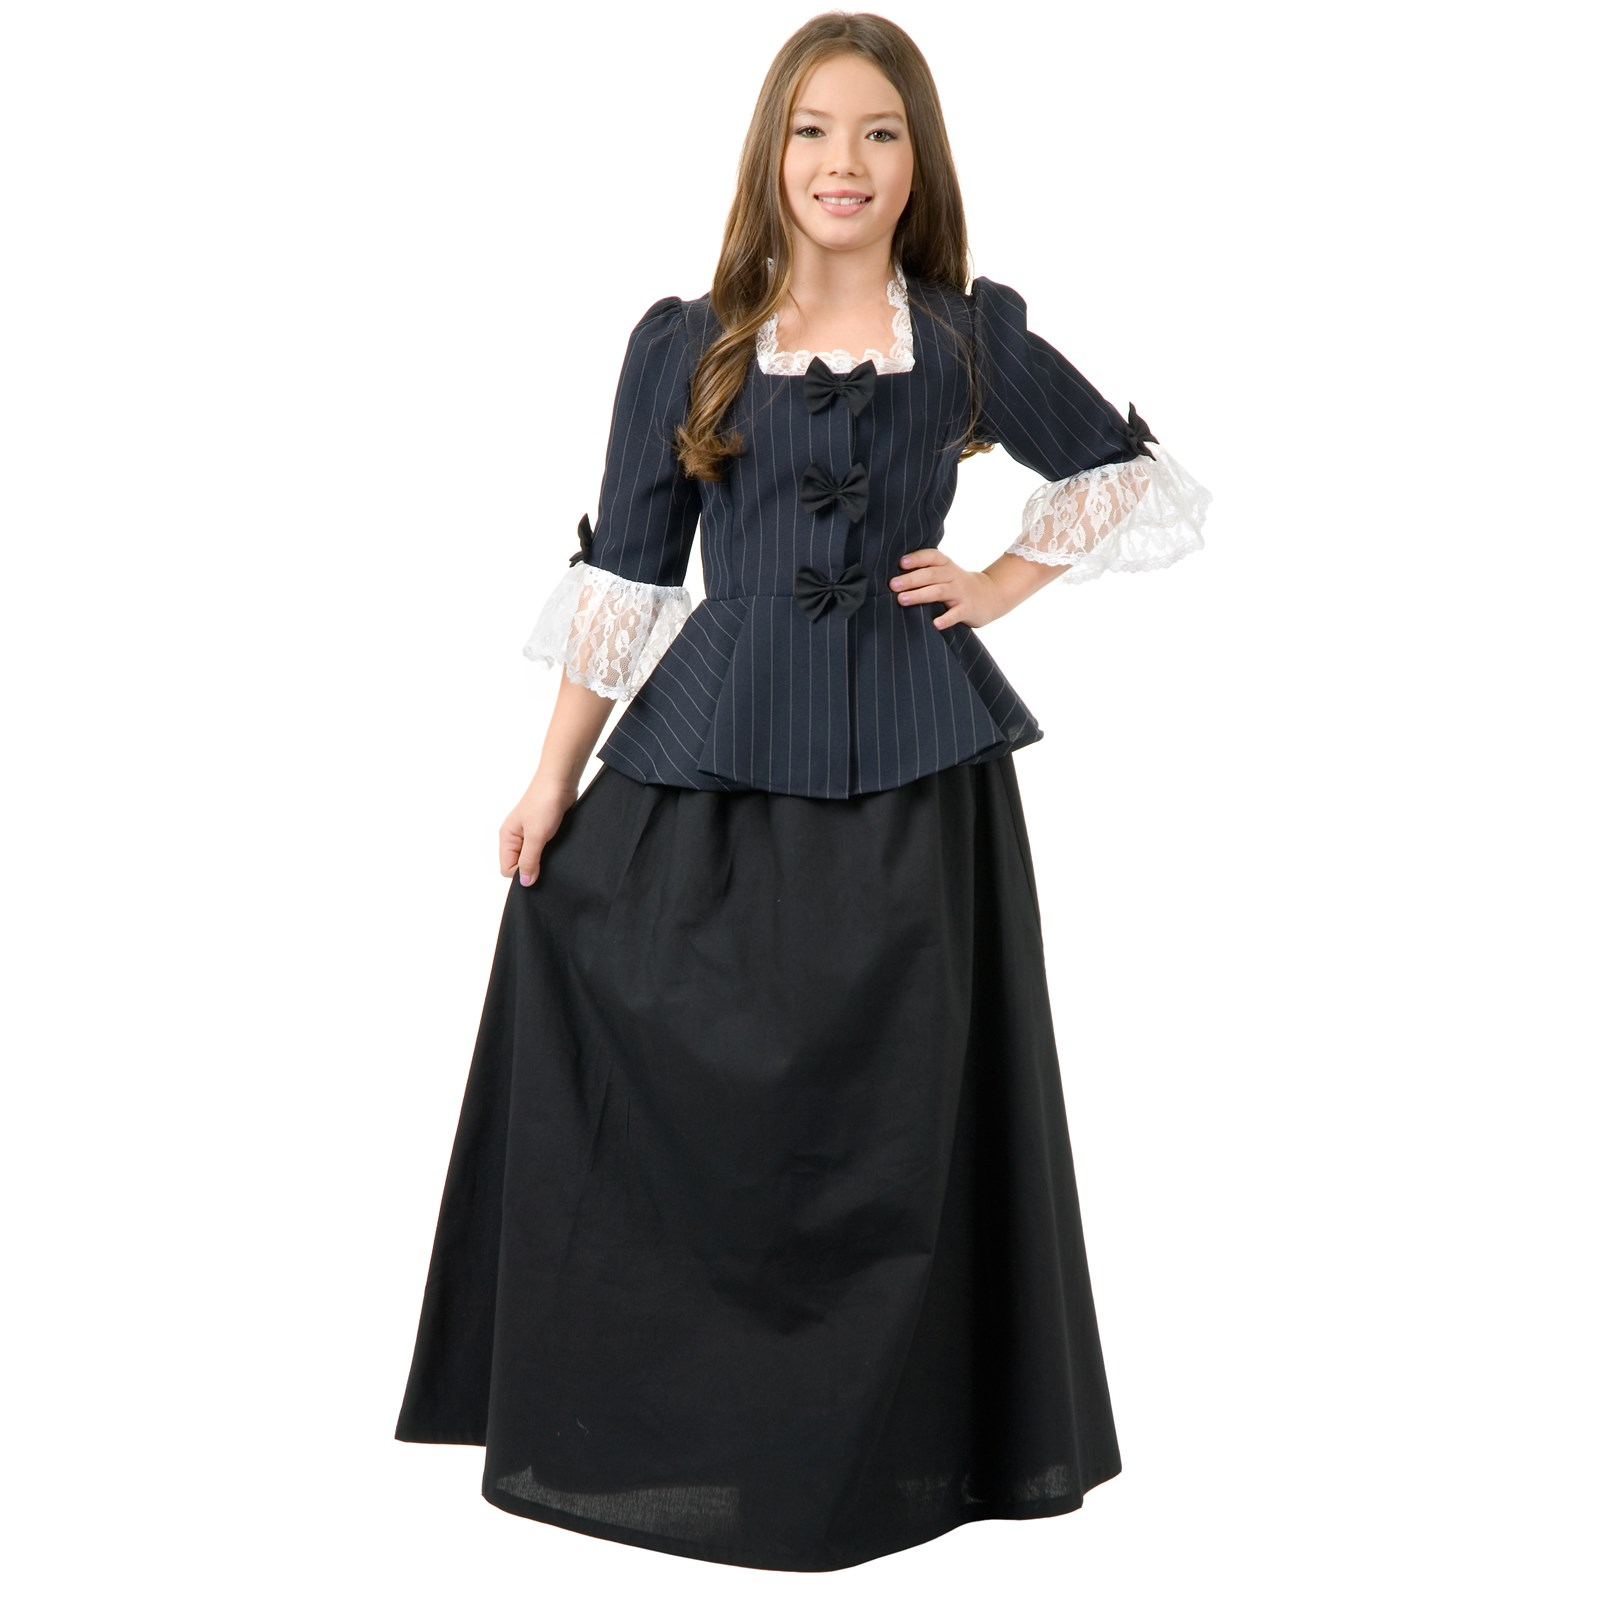 Colonial Girl Child Costume   BuyCostumes.com